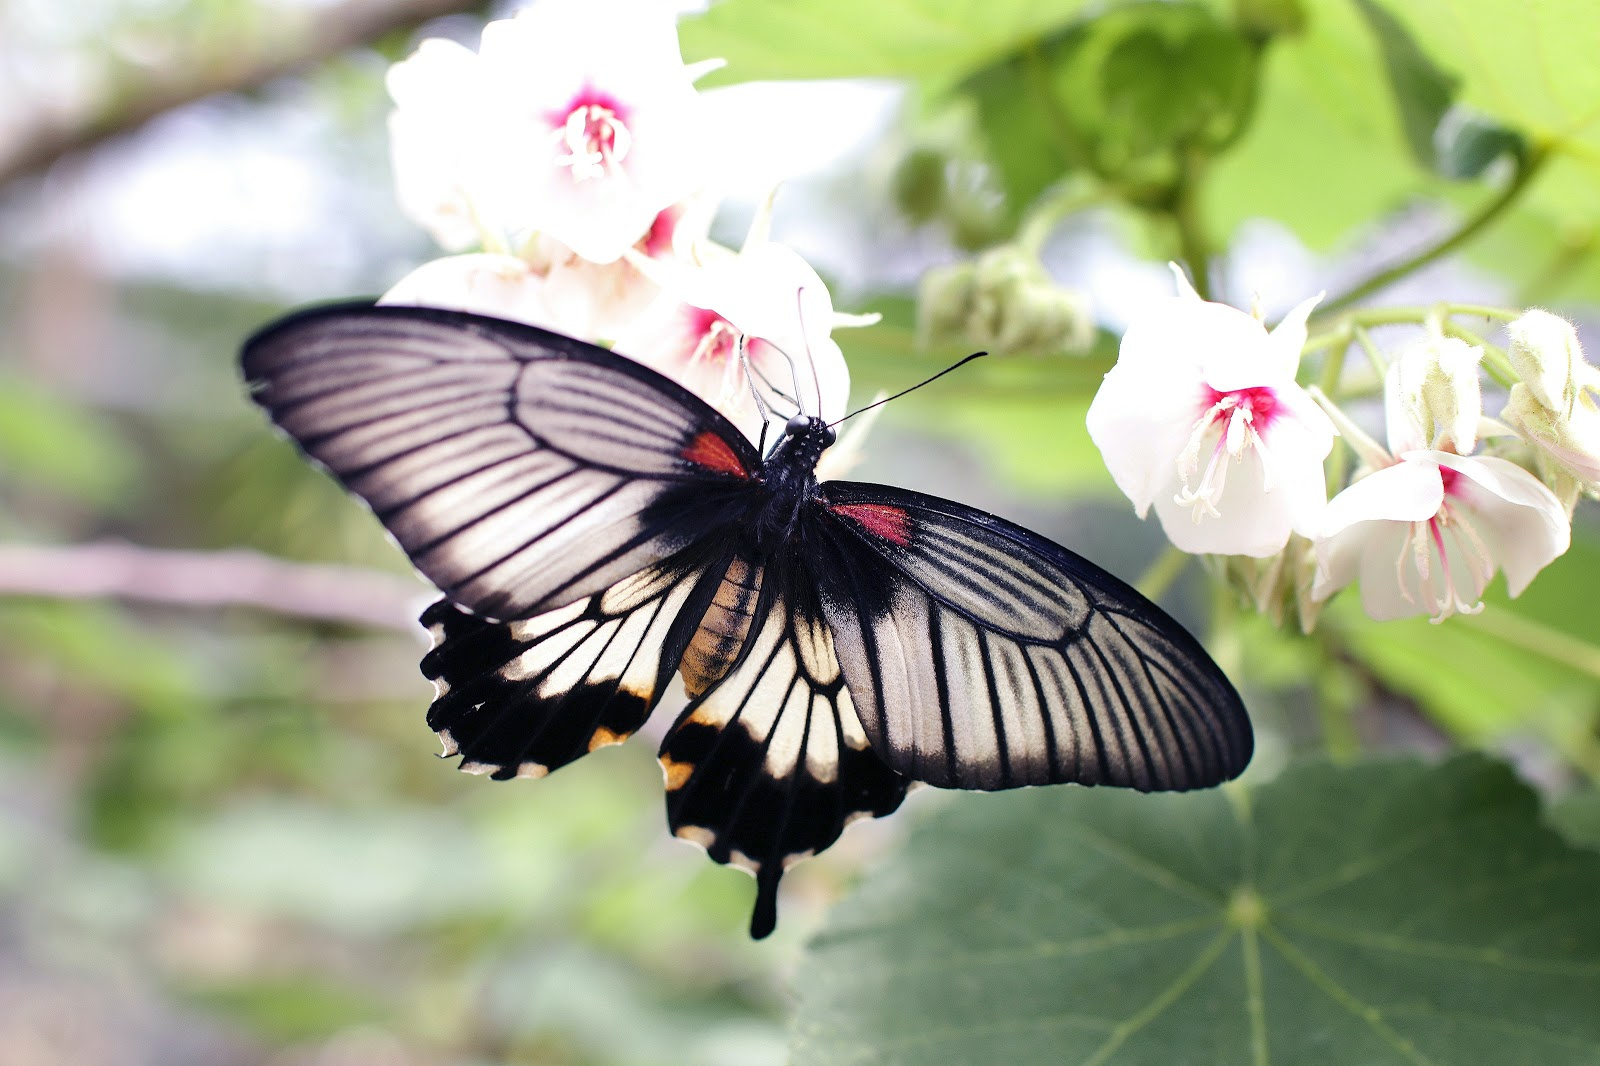 gray-and-black-butterfly-sniffing-white-flower-images